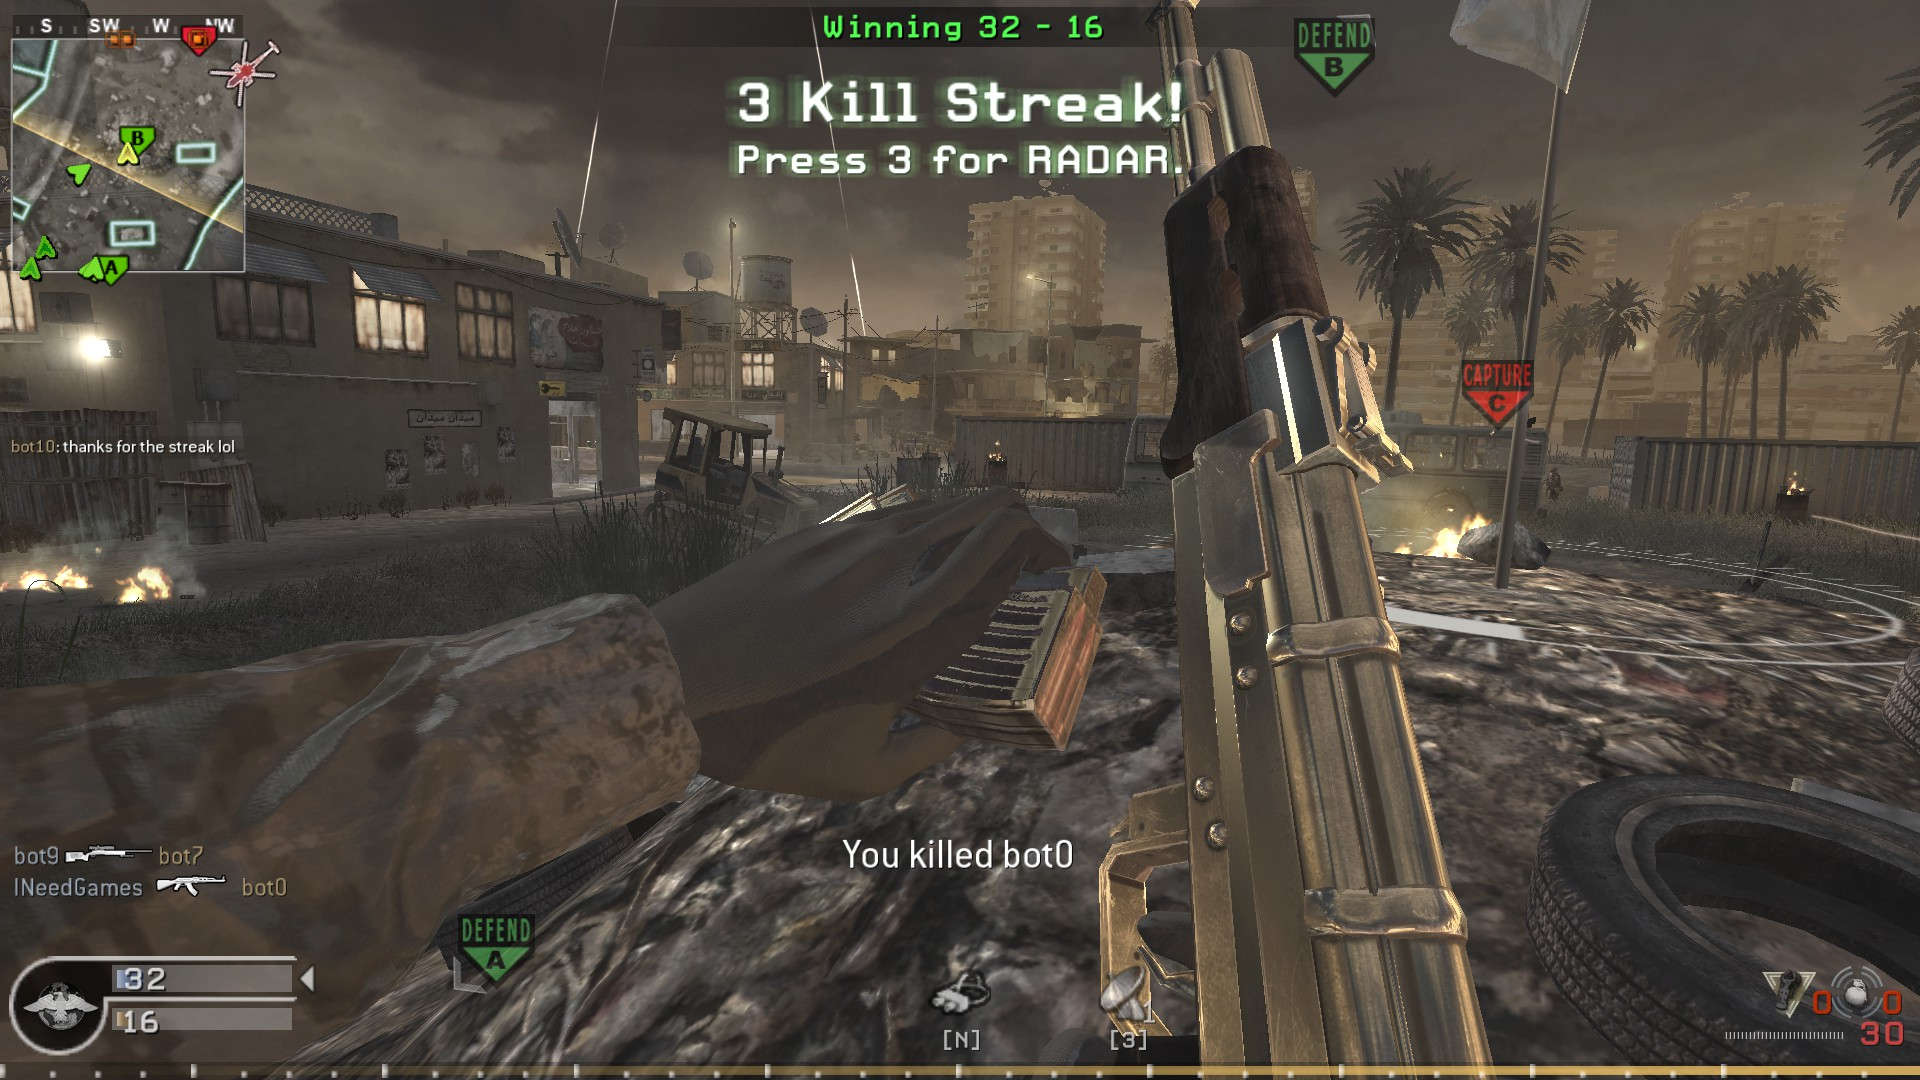 Call of duty 4 modern warfare multiplayer 17 patch download